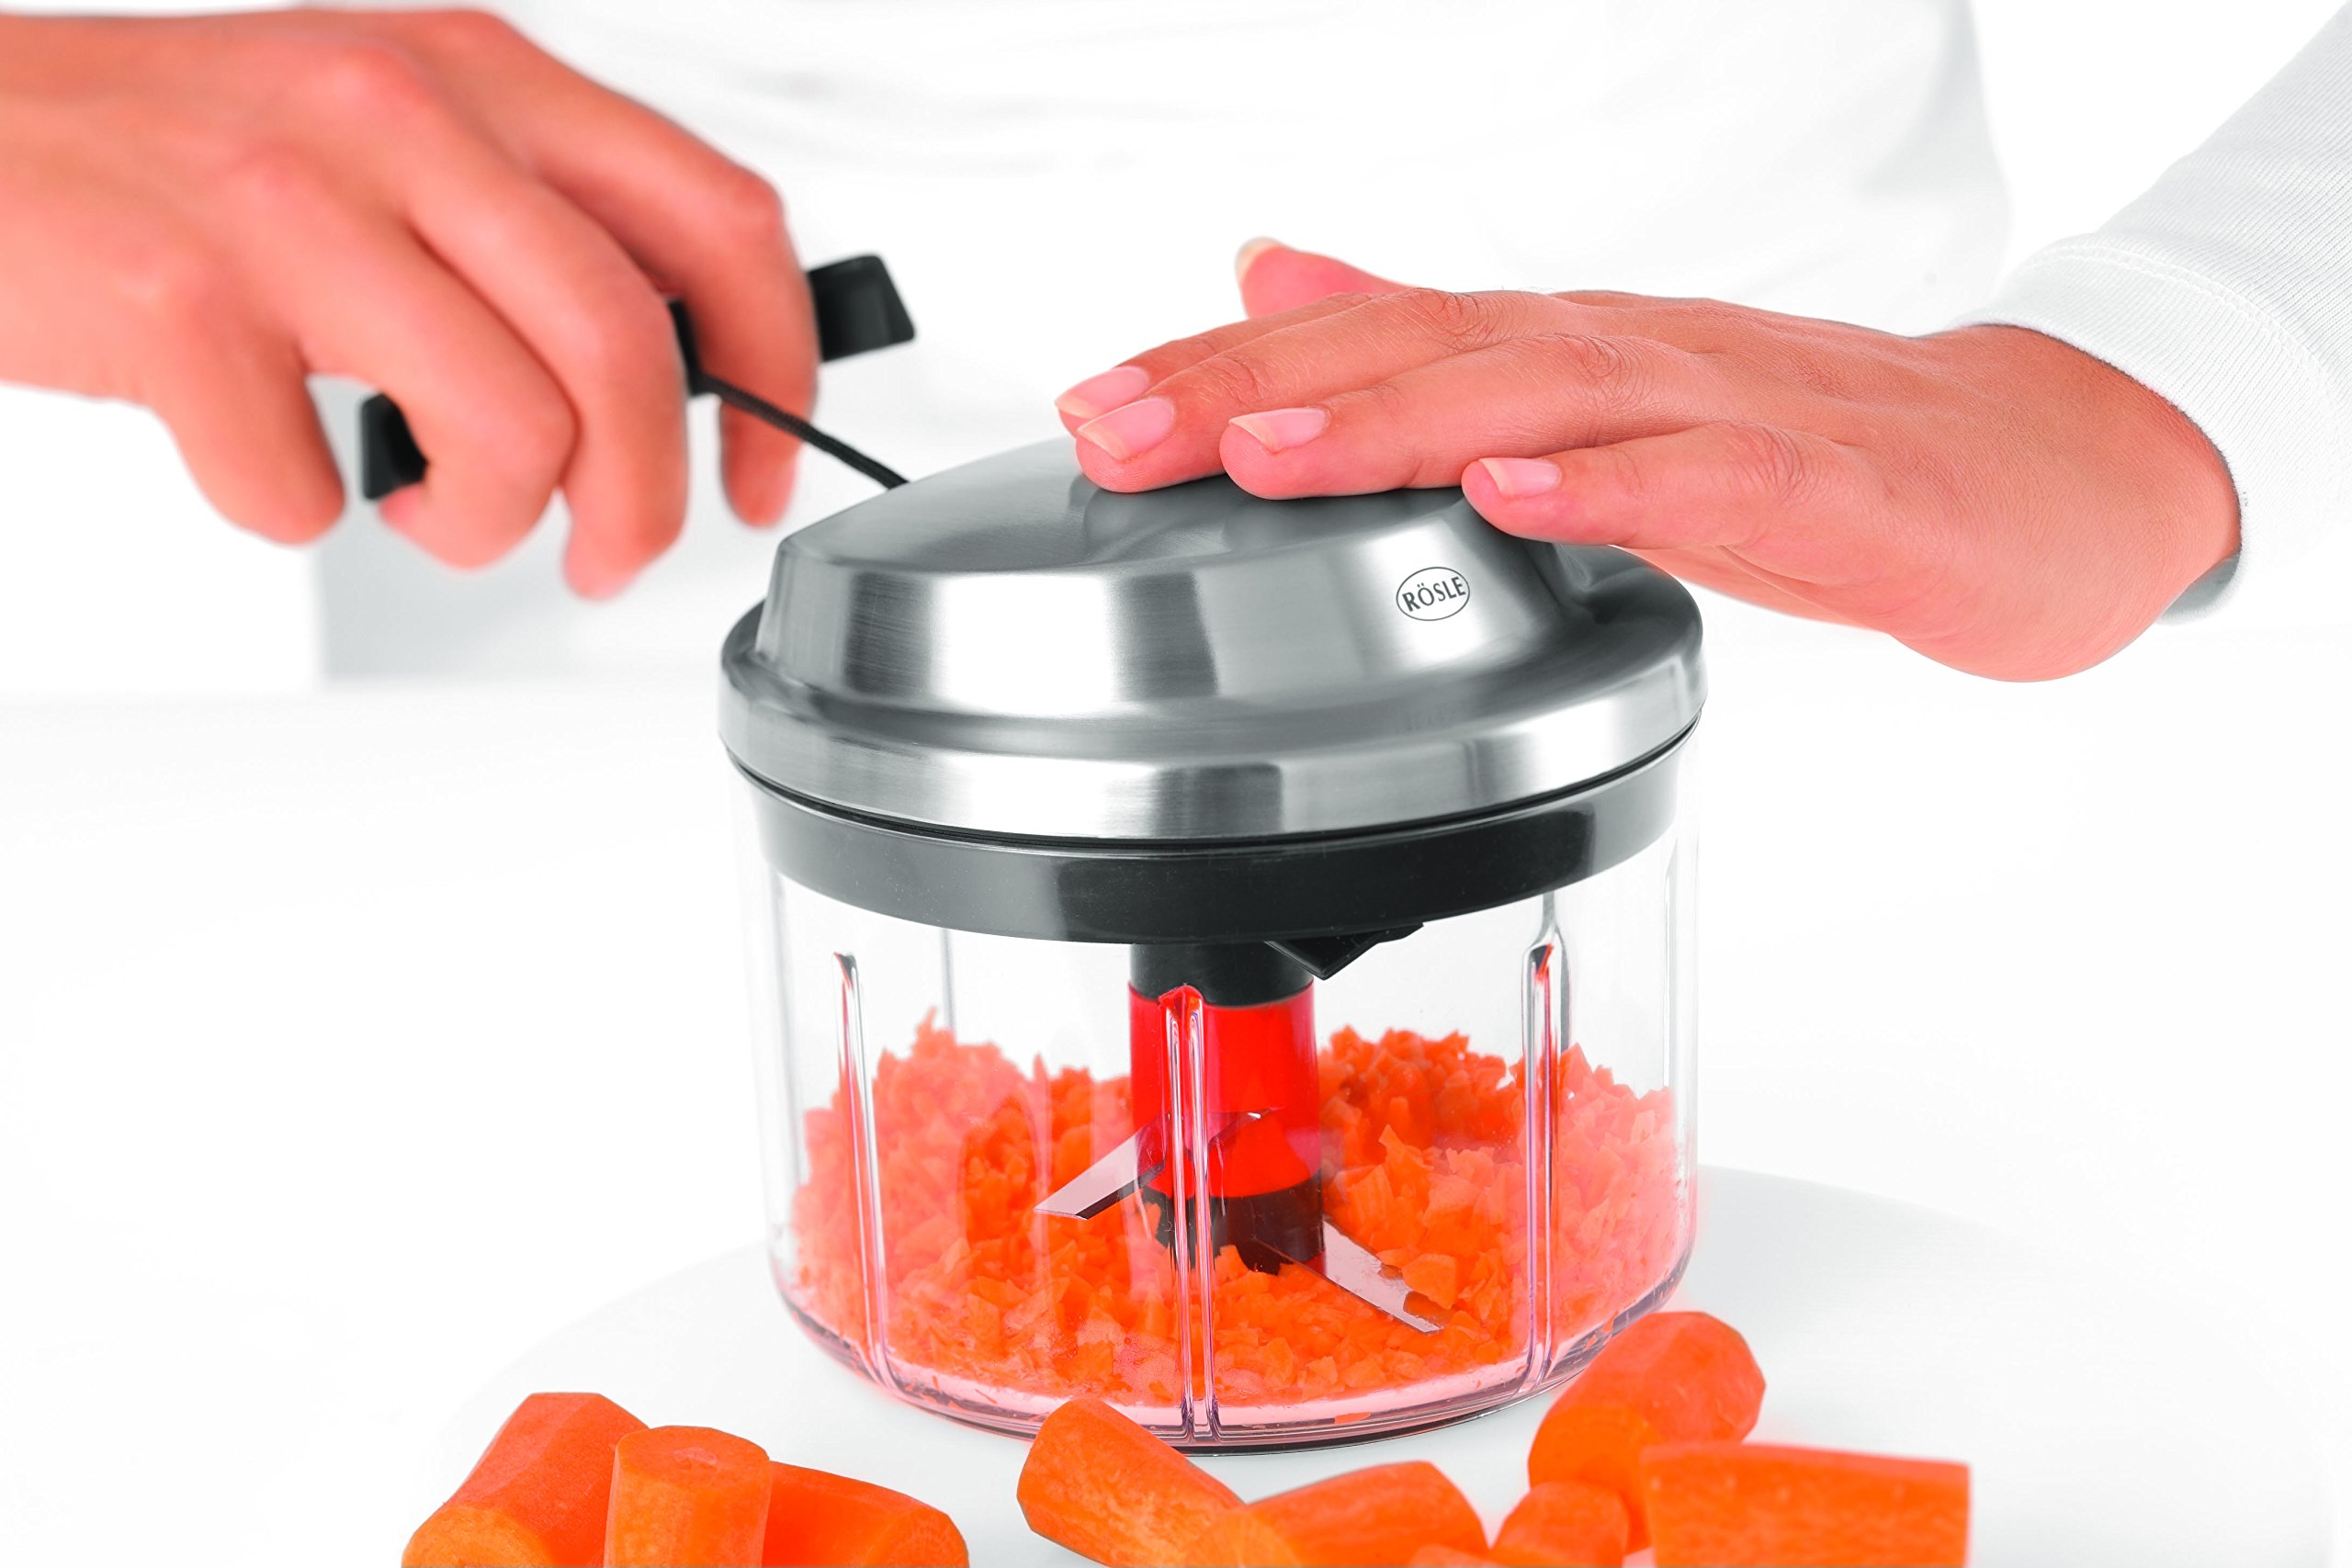 Rösle Manual Multi-Cutter with Spin-Drying Herbs Basket by Rosle (Image #5)